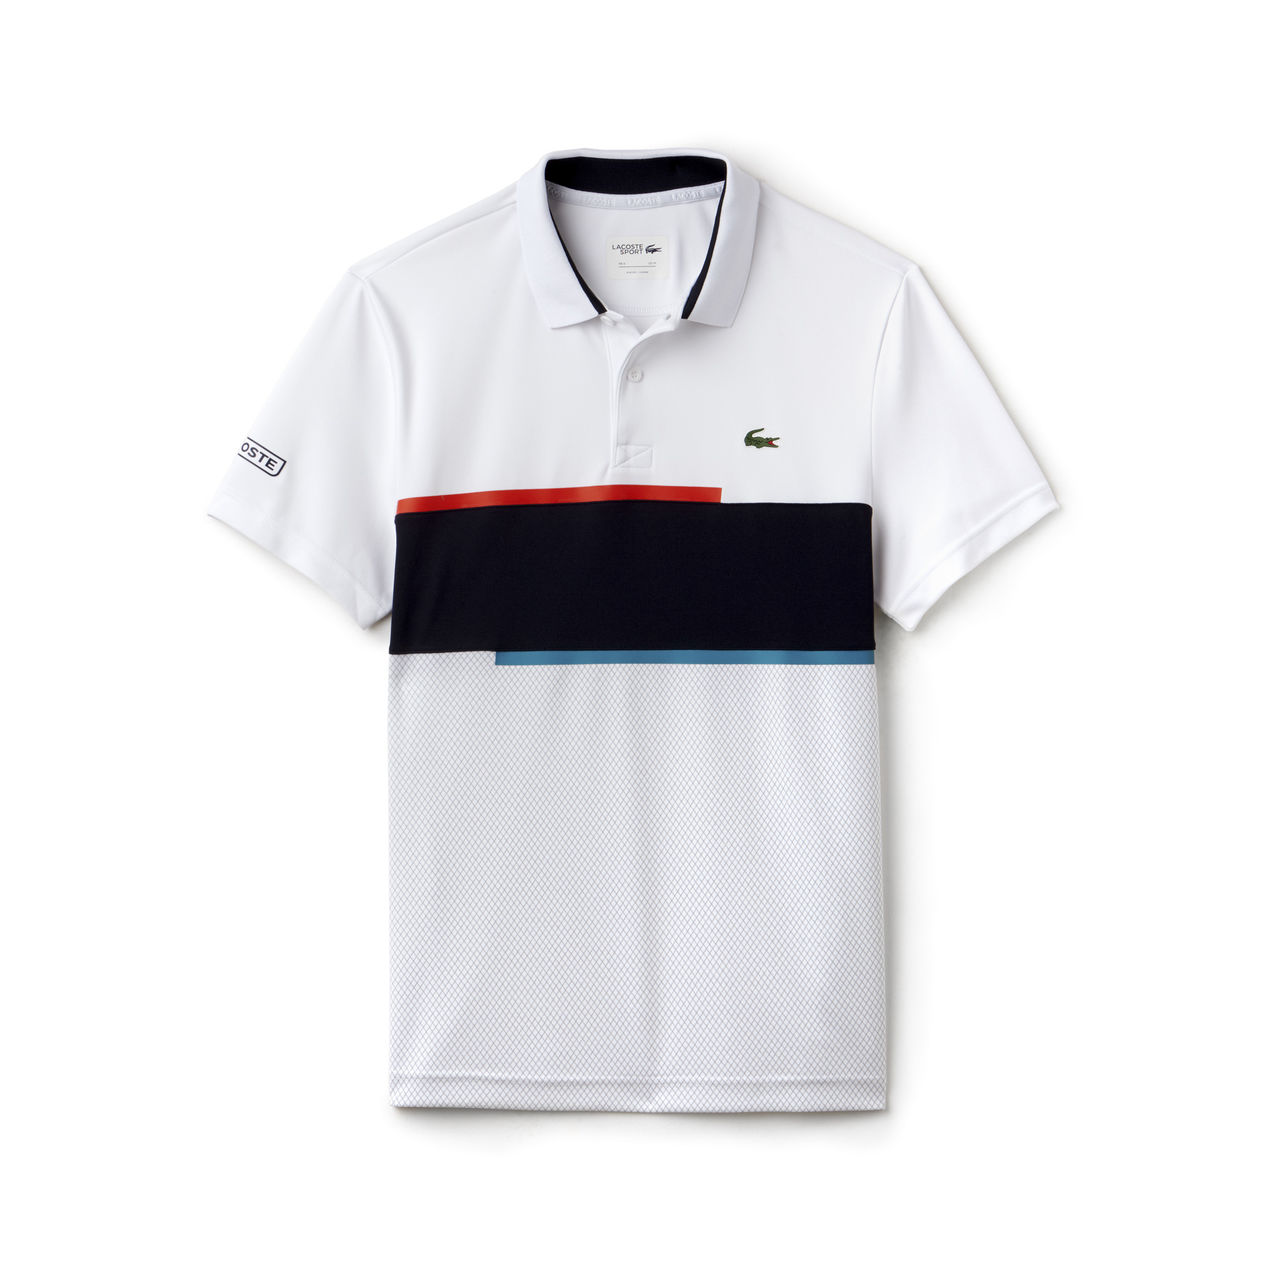 Camisa Polo Lacoste DH2071 Branco 712f3bf352532